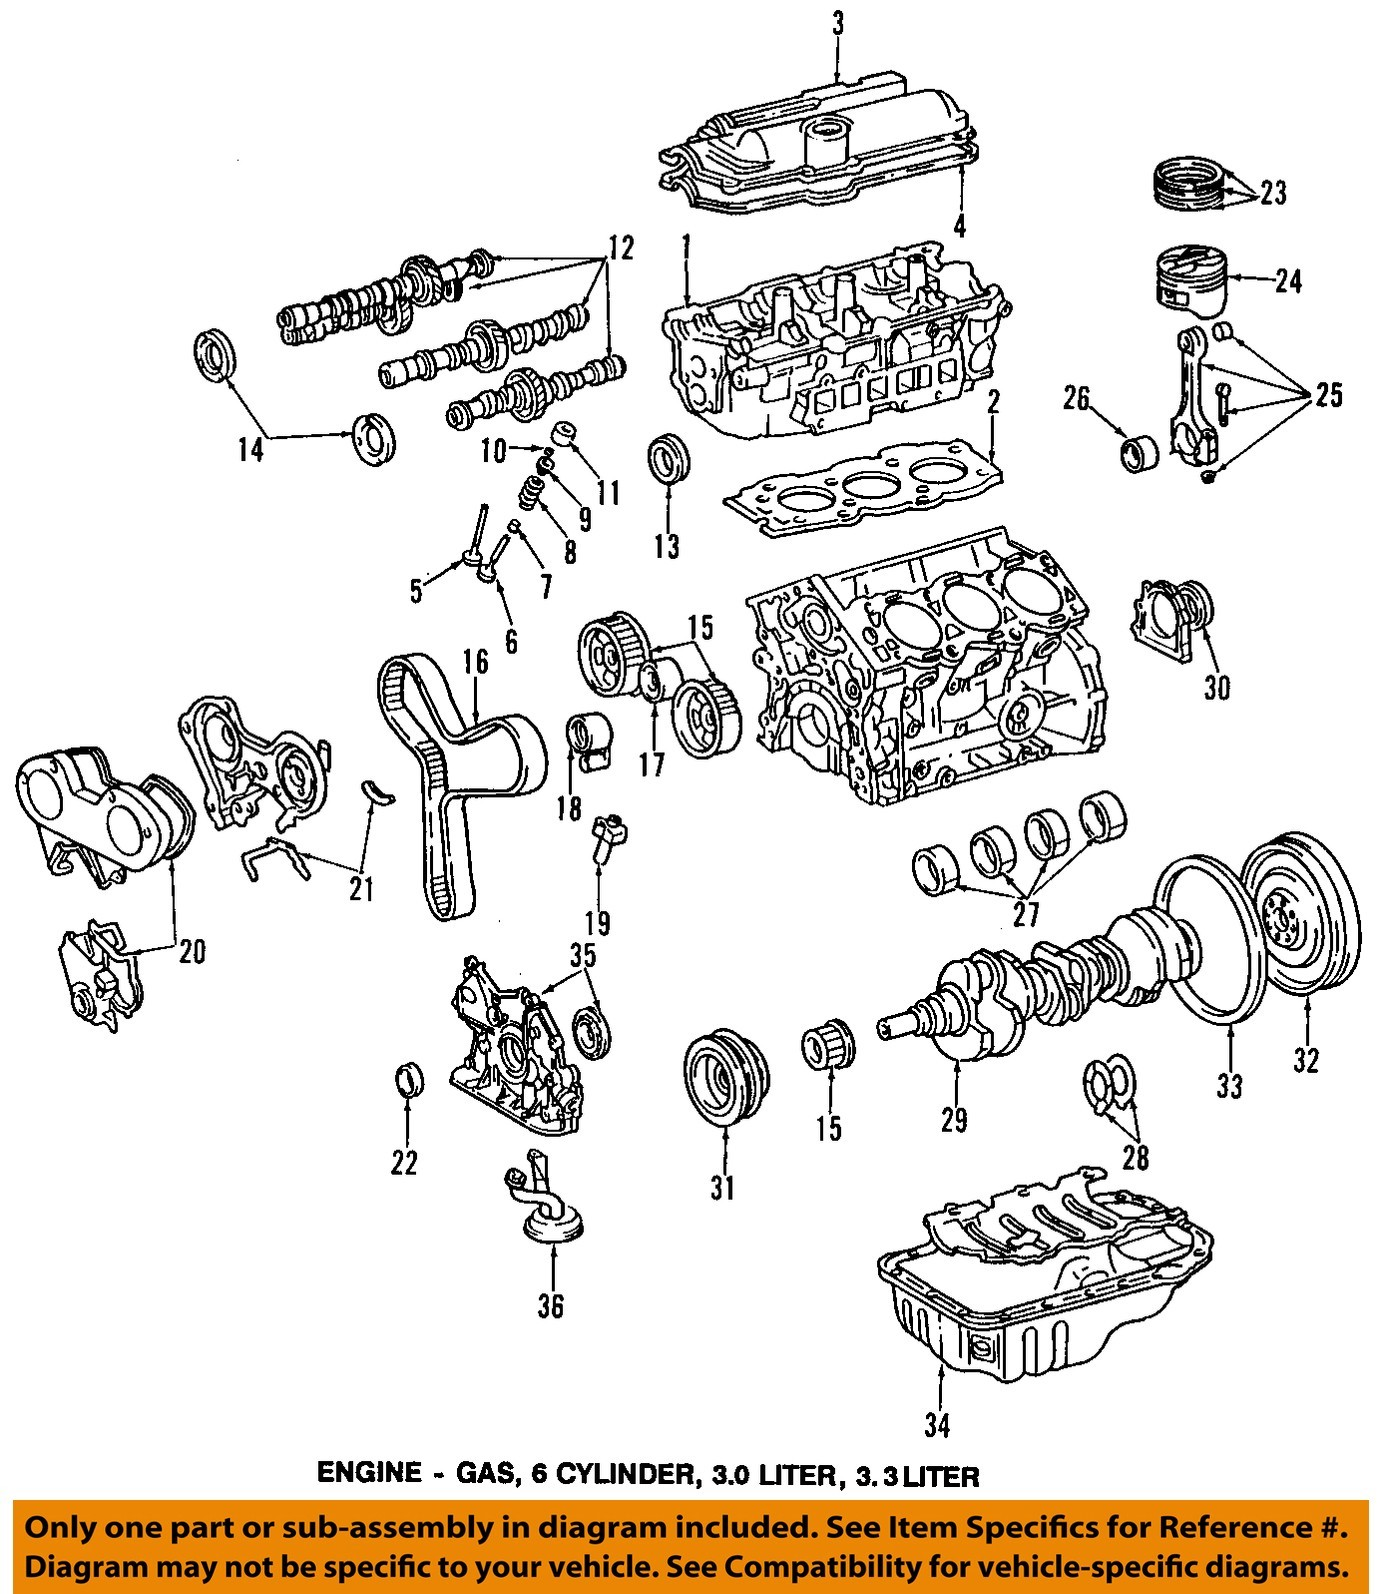 1994 toyota Camry Engine Diagram 1997 toyota Camry Engine Diagram toyota  Oem Valve Lifter – My Wiring